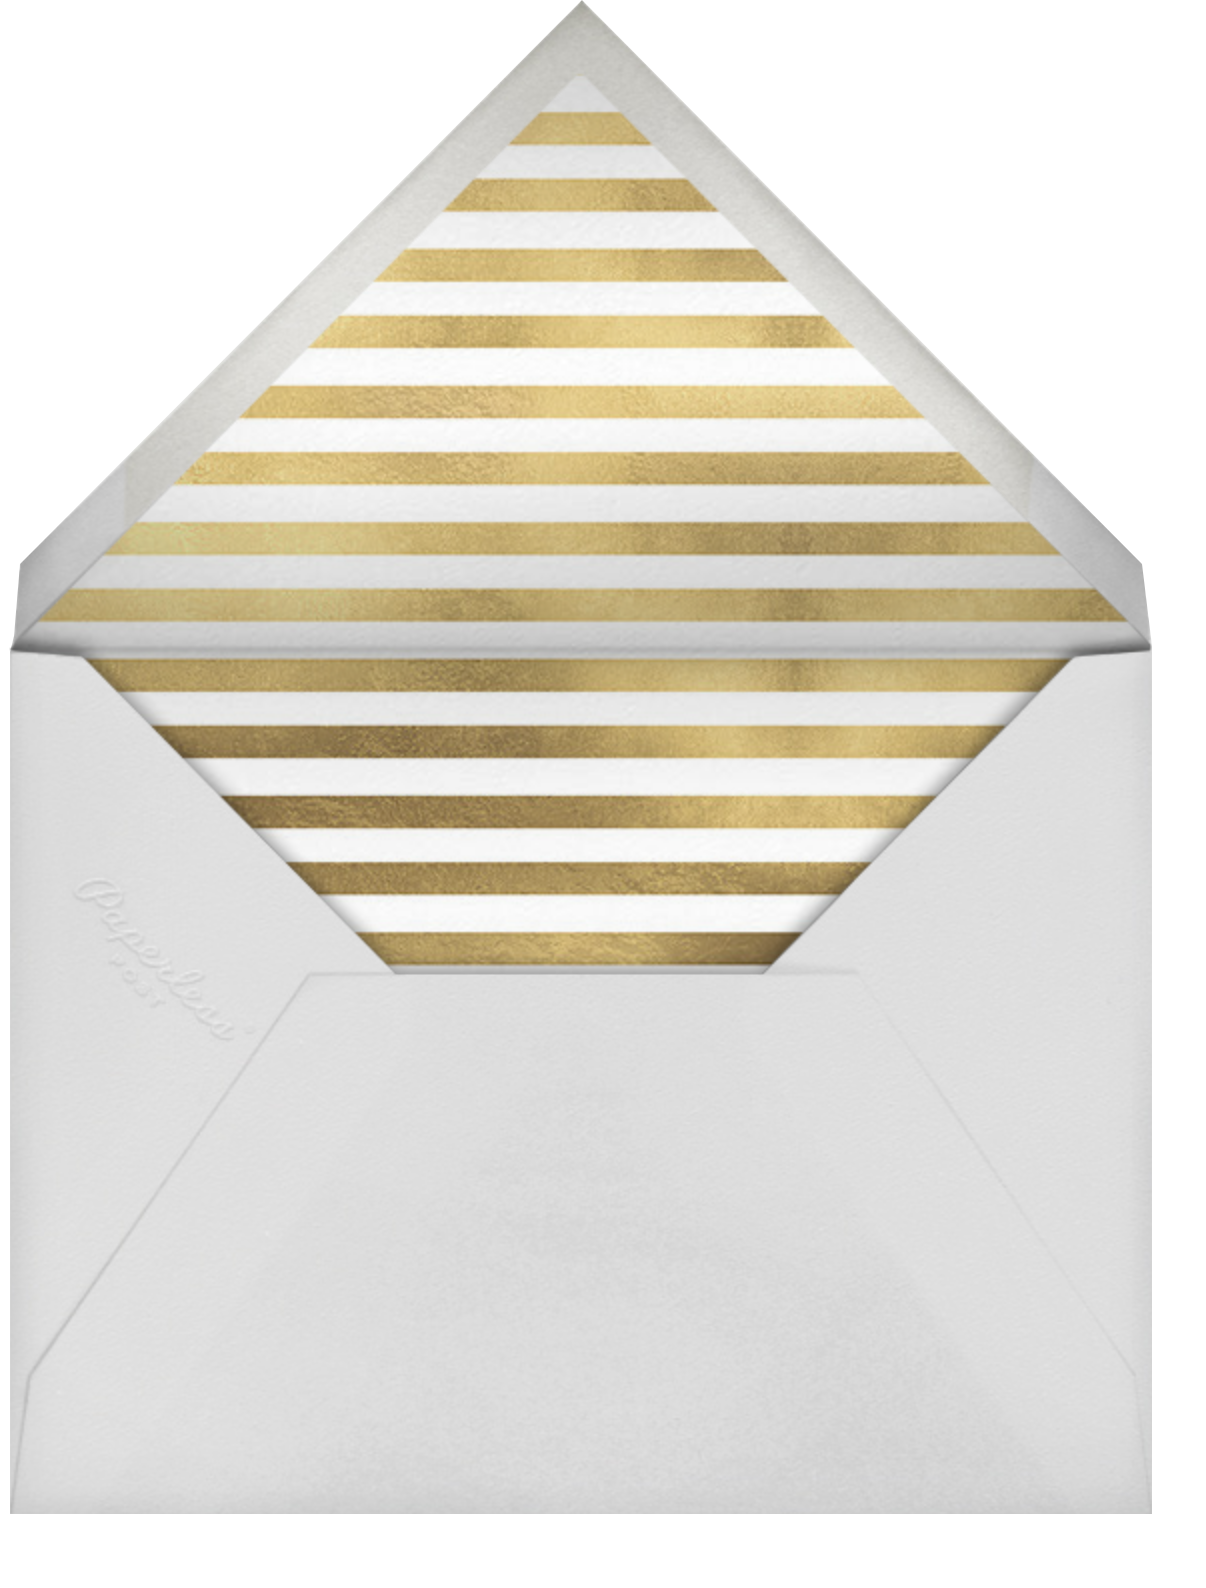 Confetti Horizontal (Double-Sided Photo) - Gold - kate spade new york - Holiday cards - envelope back